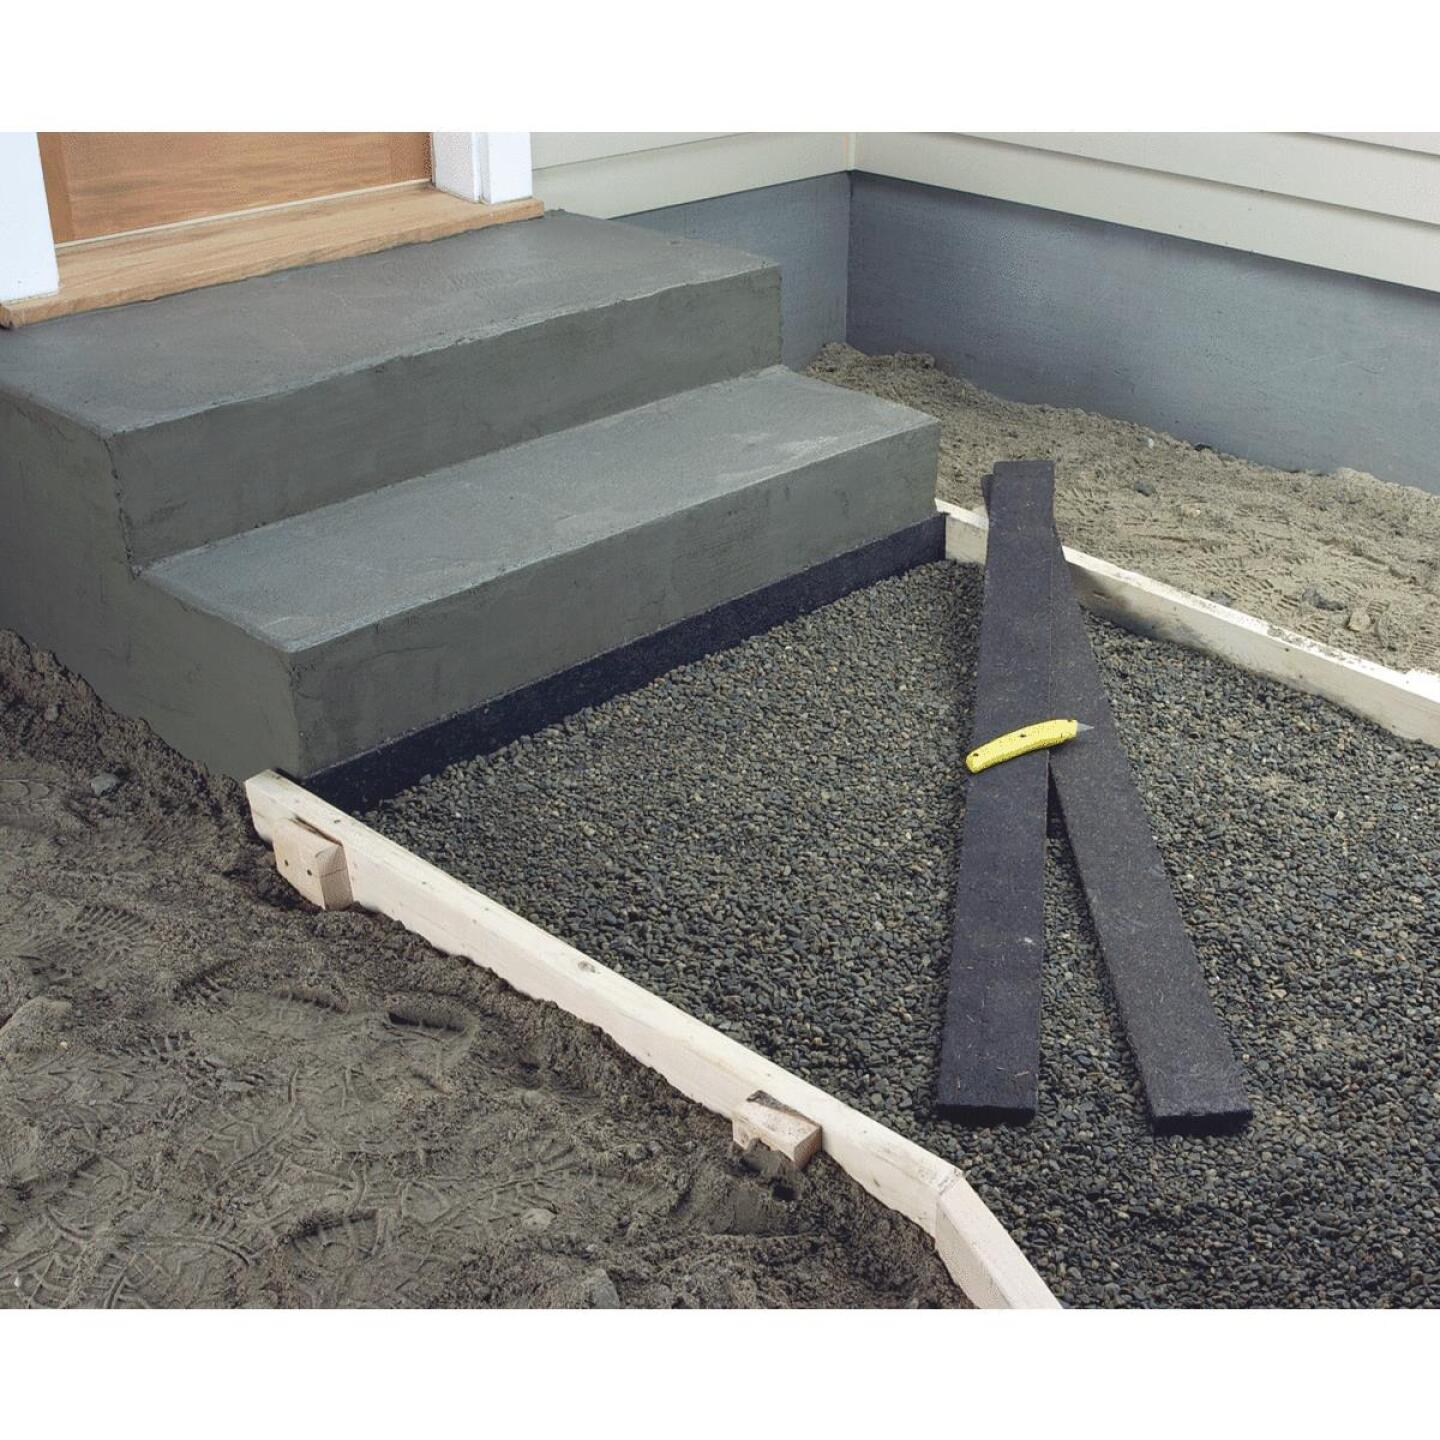 "Quikrete Expansion Joint, 4"" x 5' Image 2"